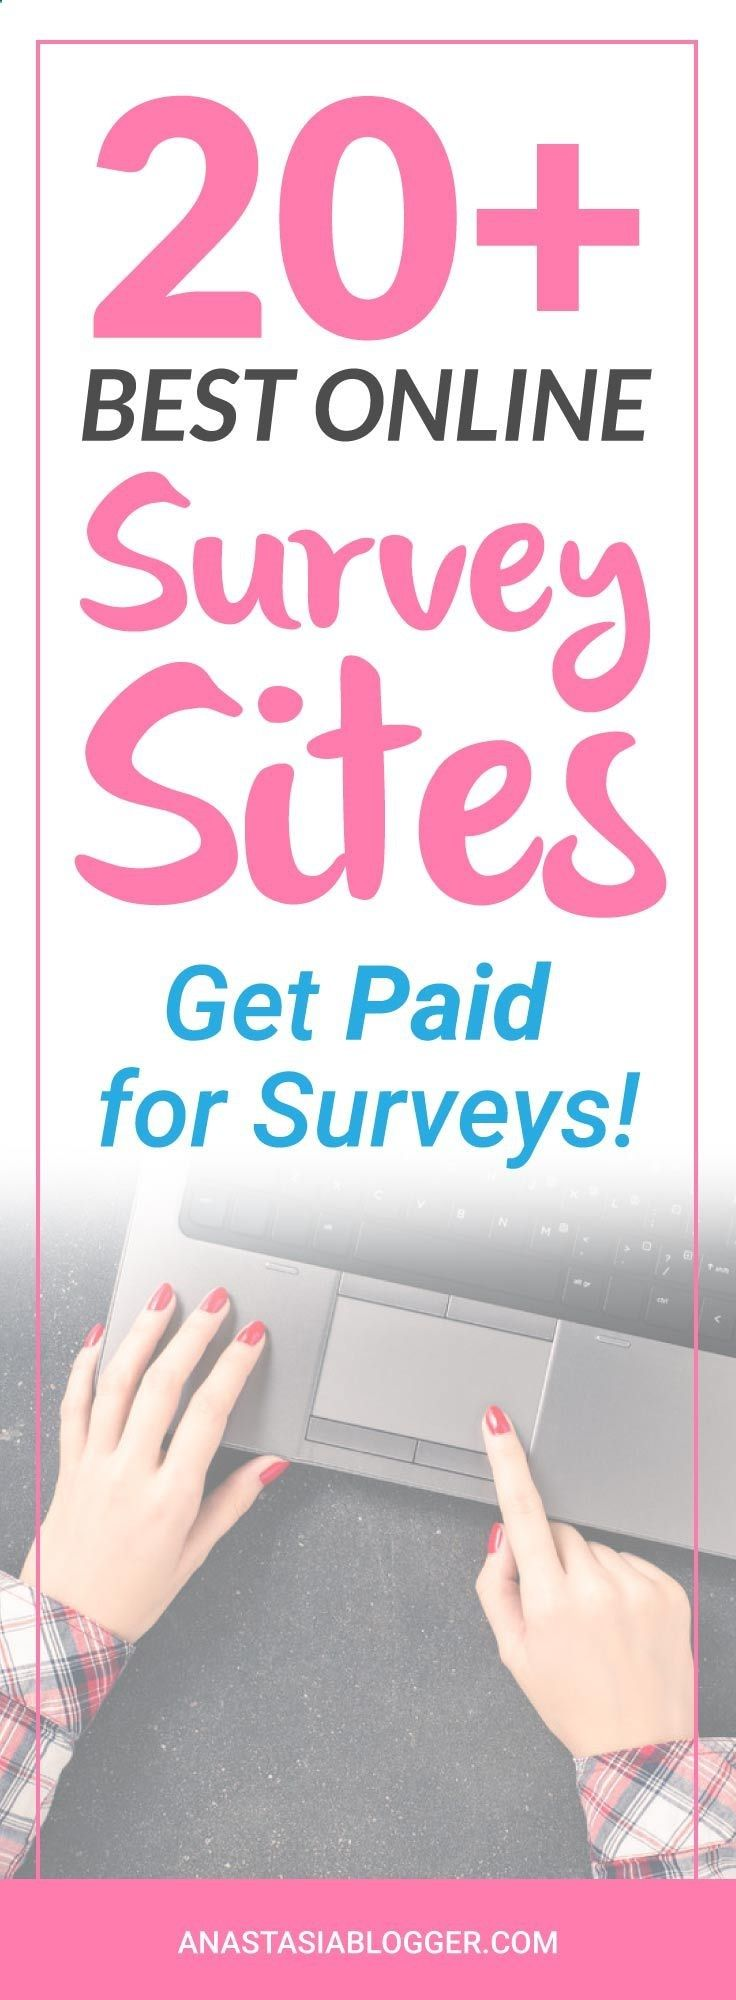 20  best paid online surveys sites. Get paid for surveys! Online surveys for money, Online surveys that pay, Paid online surveys. Get a list of Best online surveys in the US, Canada and the UK!